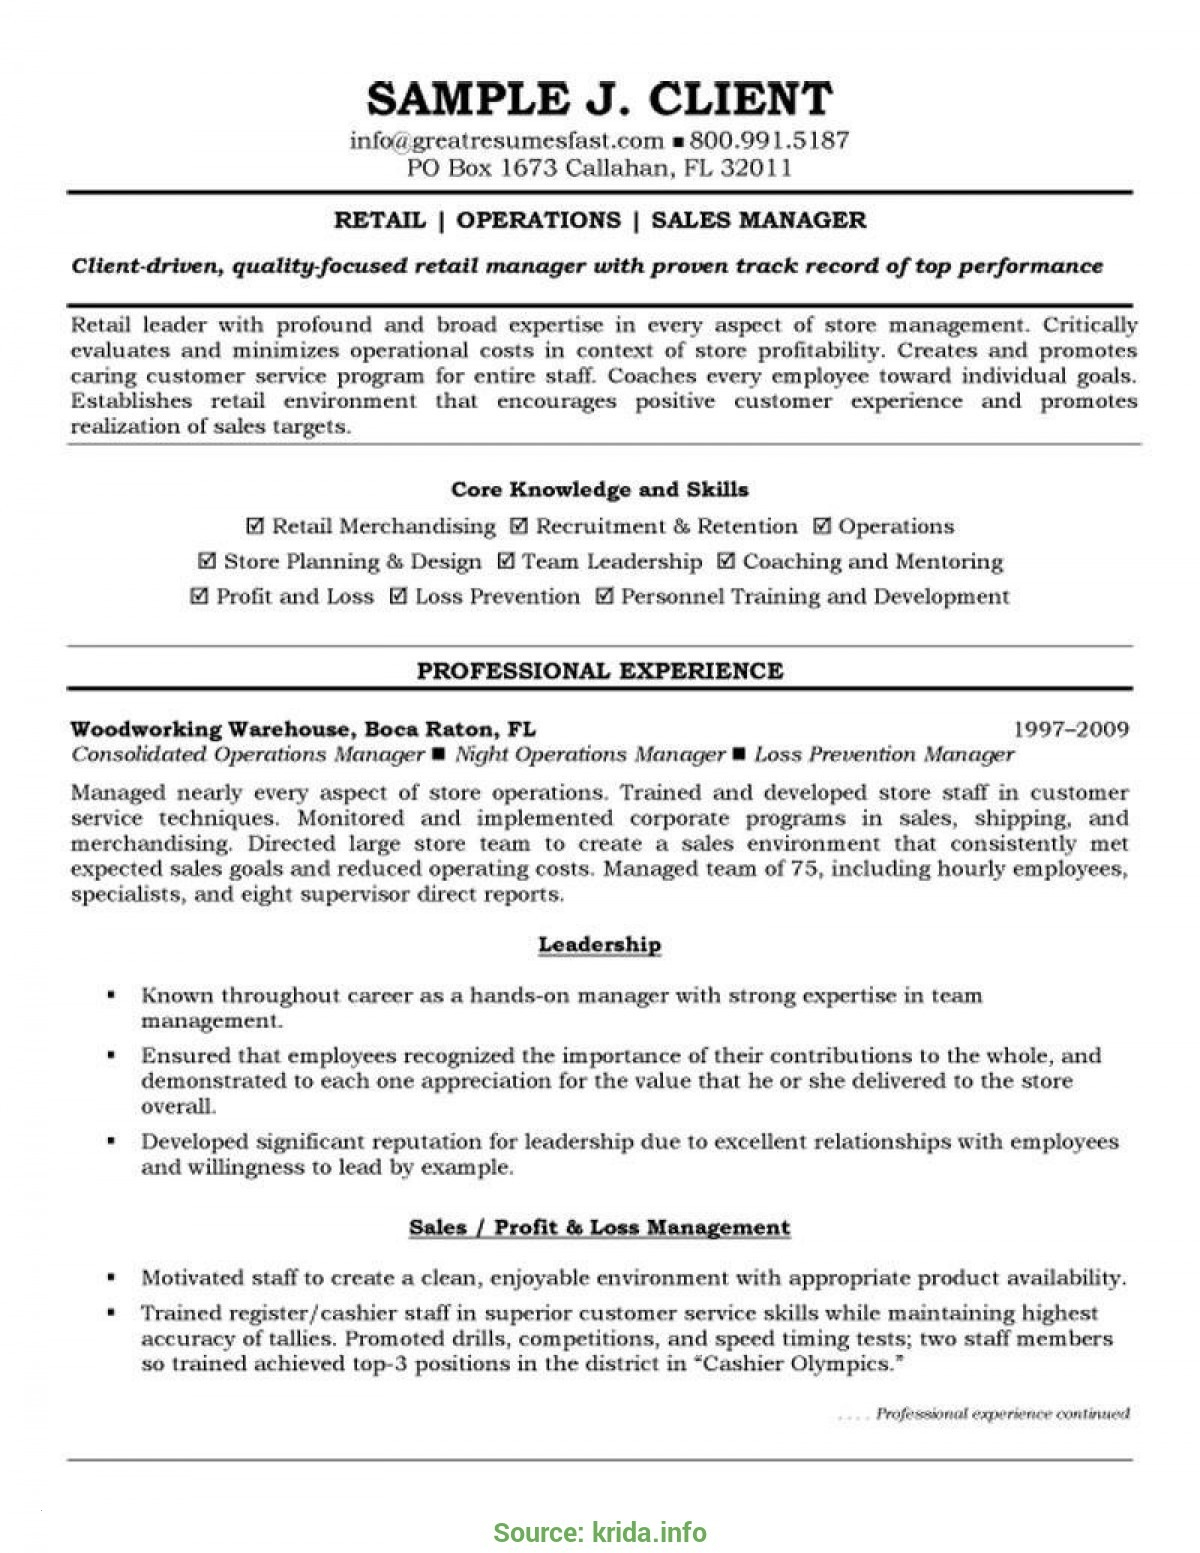 Retail Management Resume Template - Retail Store Manager Resume Example Best Retail Management Resume